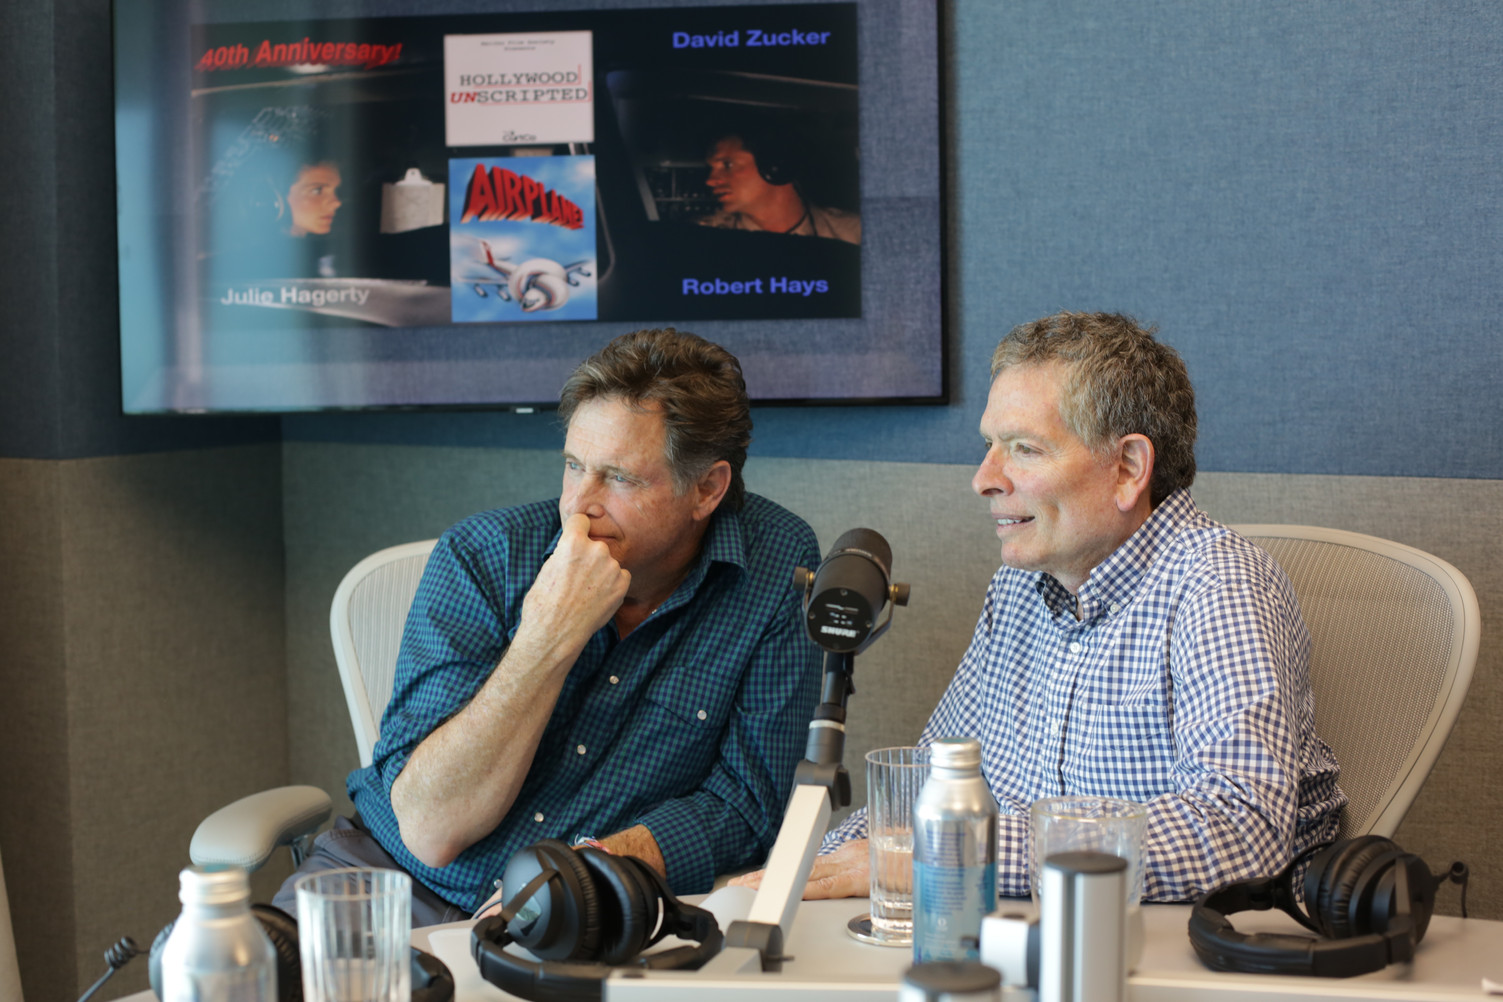 Ep 19 - AIRPLANE! A 40TH ANNIVERSARY CELEBRATION | Guests: Robert Hays and David Zucker